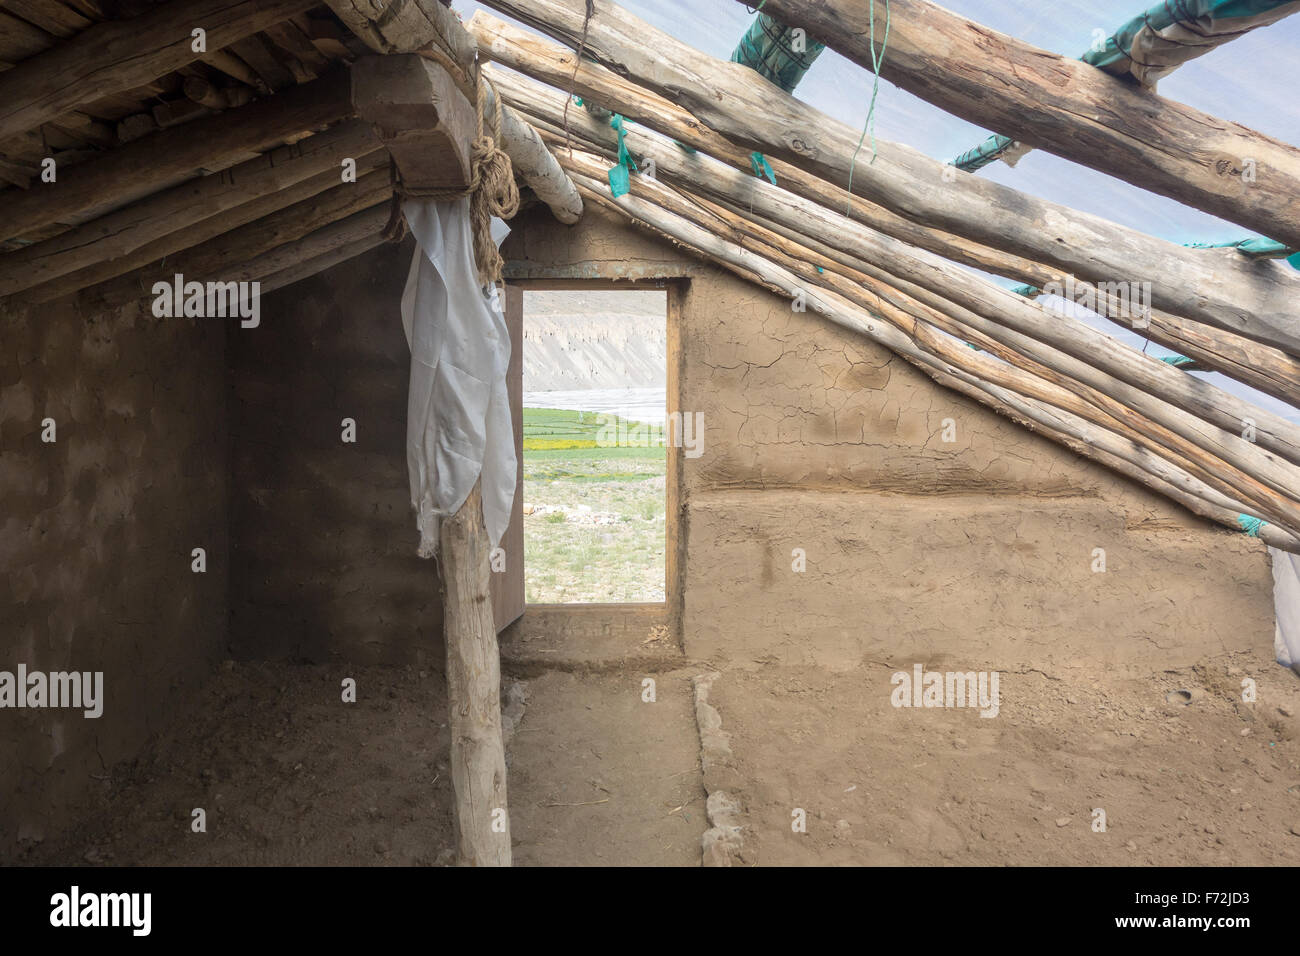 Spiti Valley volunteer greenhouse building project - Ecosphere - inside a newly completed greenhouse - Stock Image